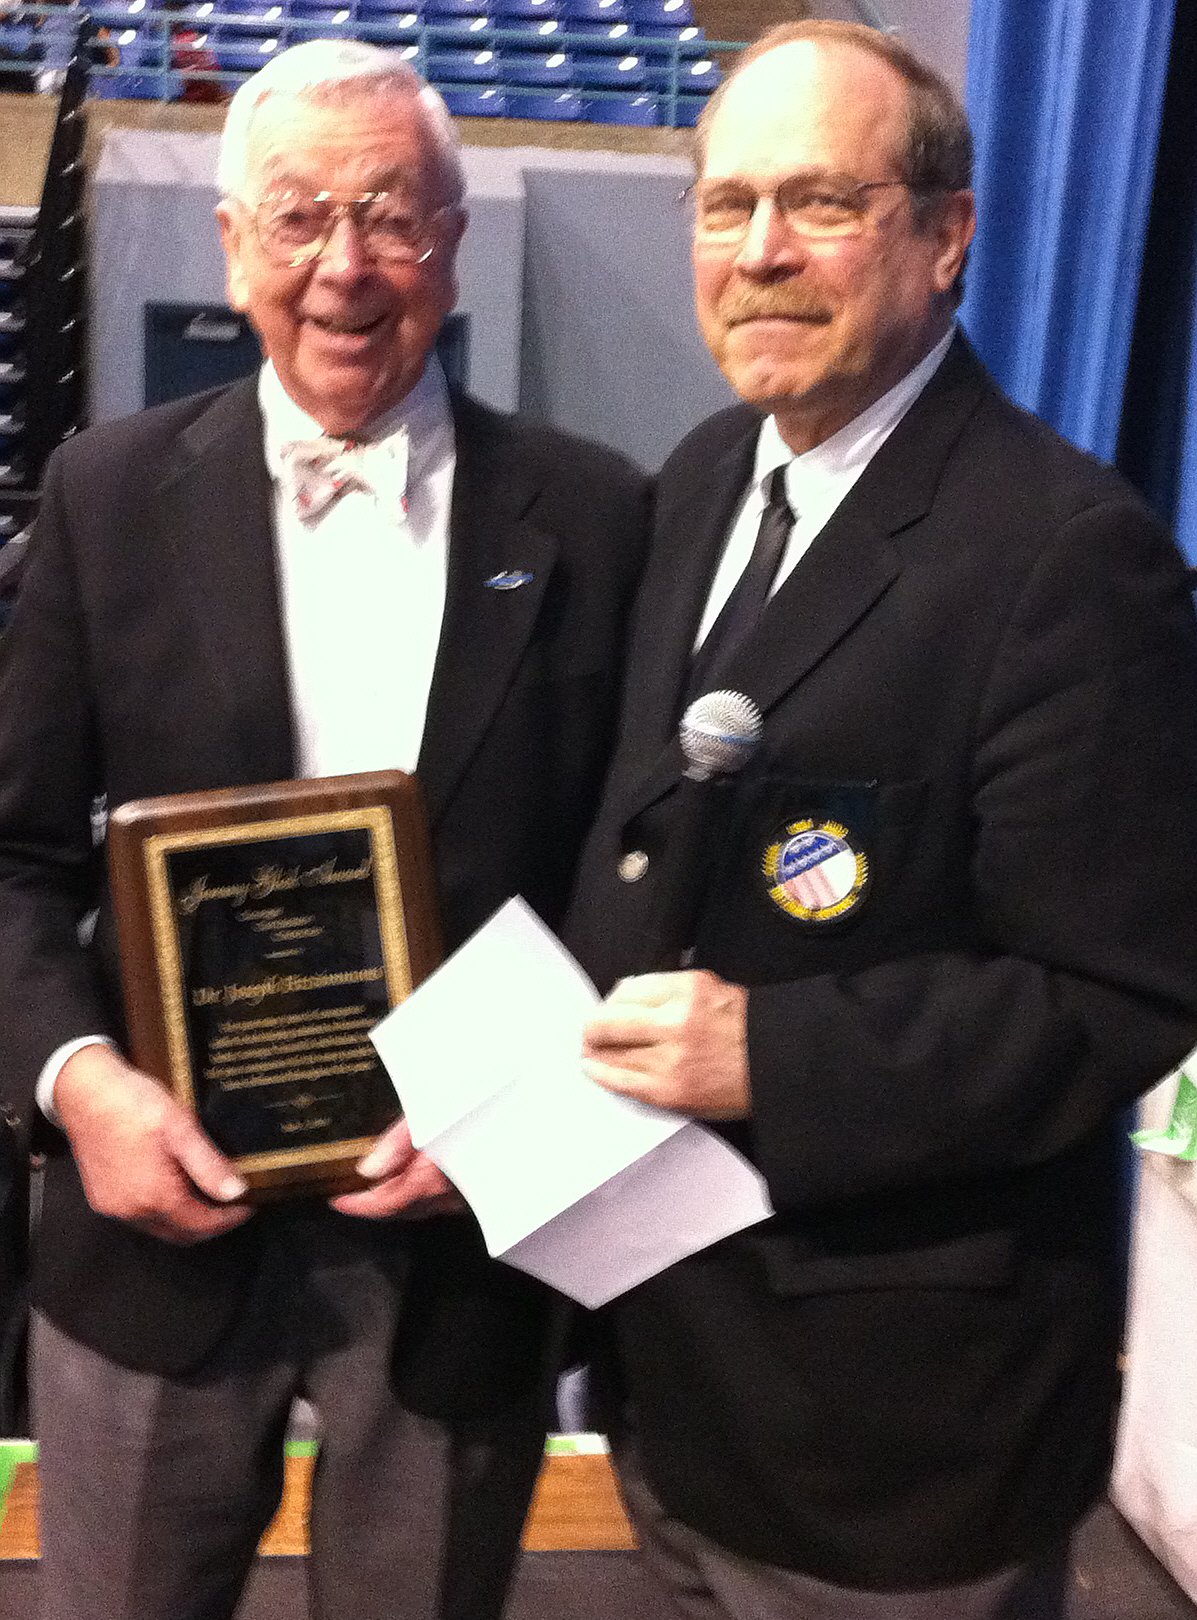 Dr. Fitzimmons receiving award from Neil Simon